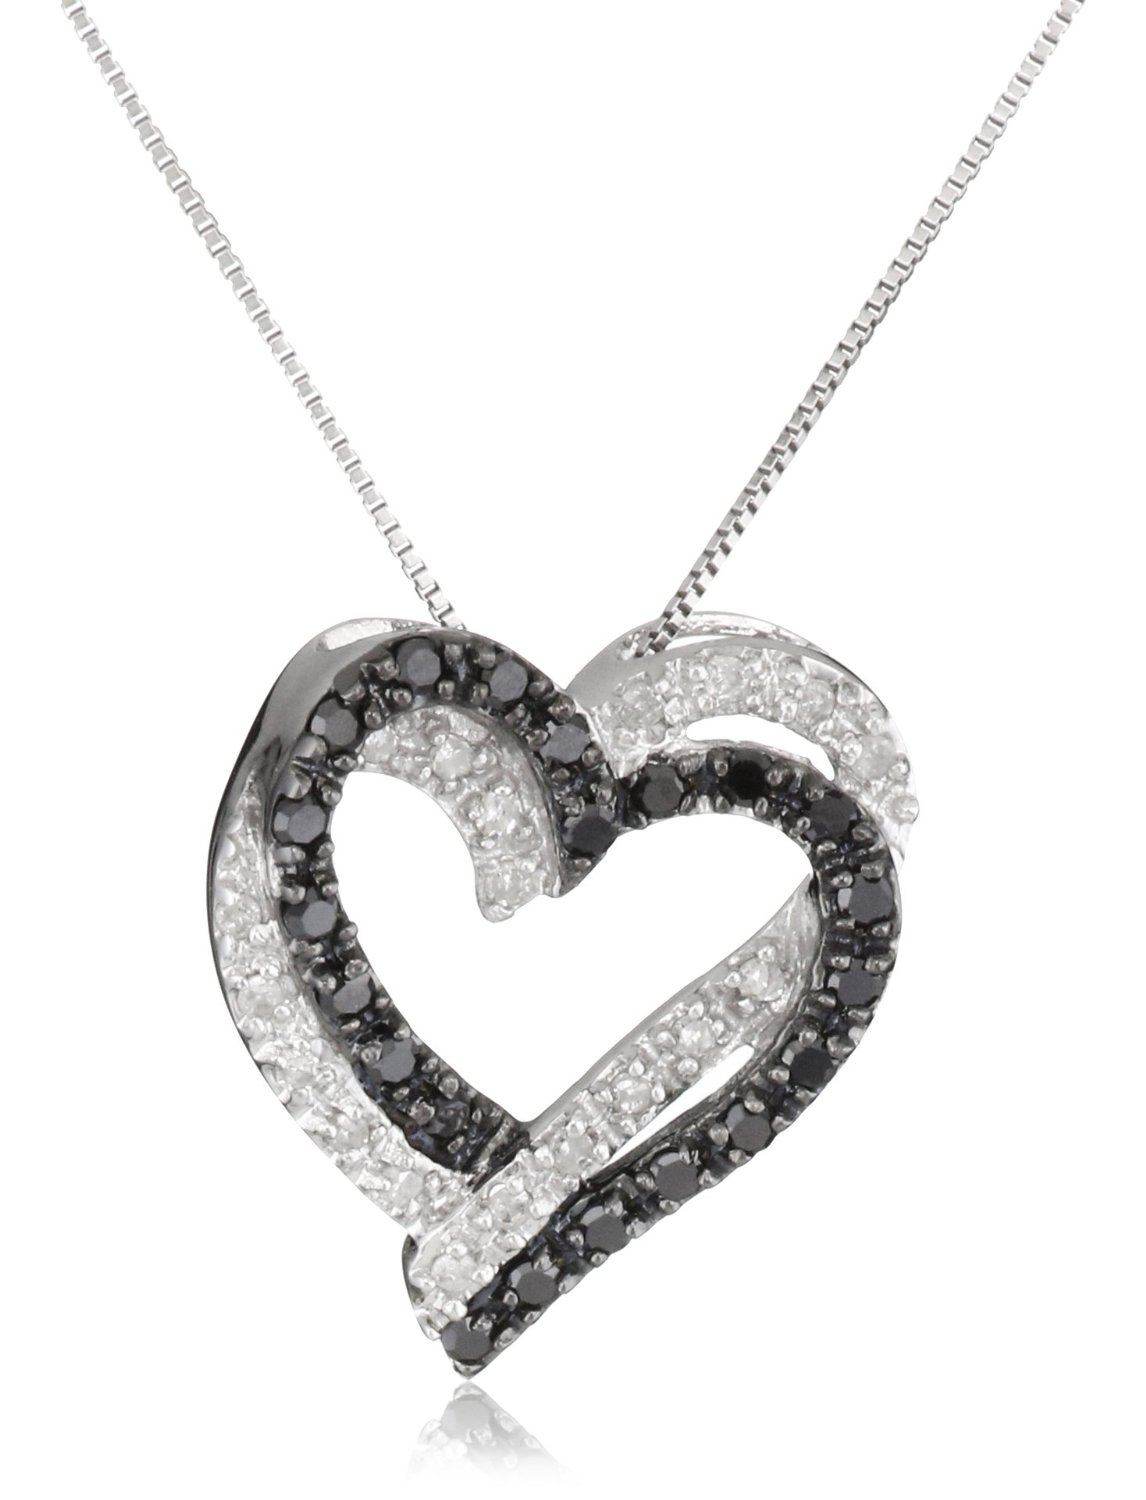 Heart pendant necklace in 14k white gold from gemone diamonds make offer aloadofball Images